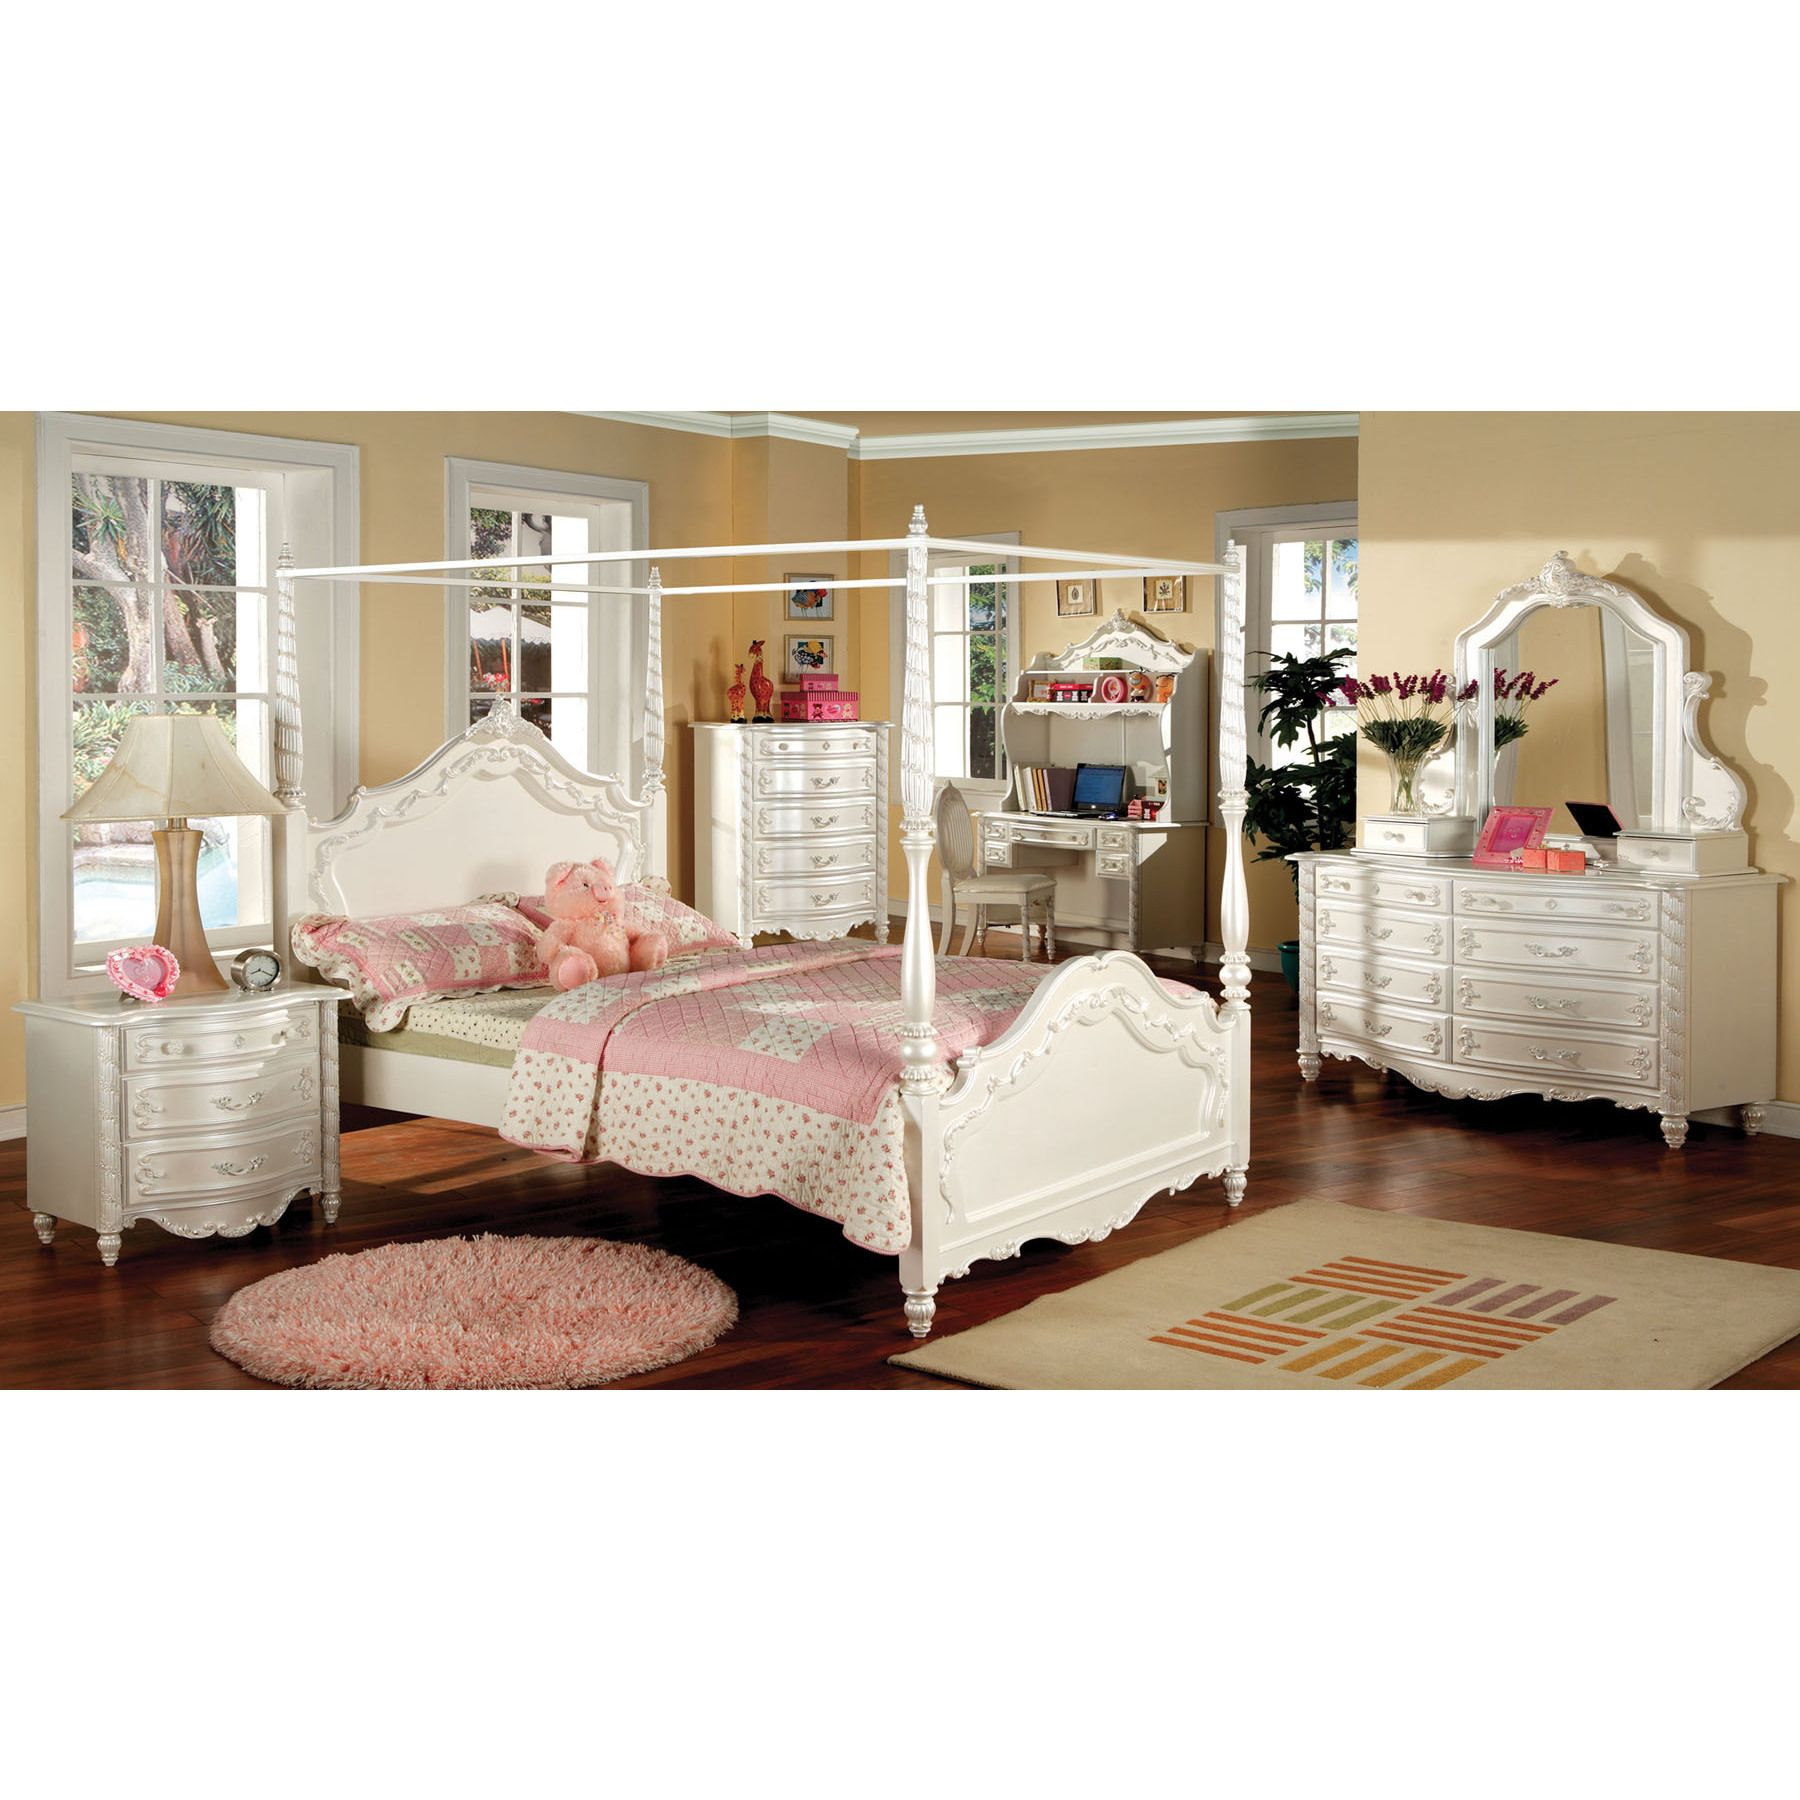 NEW Victoria Pearl White Wood Kids Twin Full Size Canopy Bed Girls Bedroom (Twin Size) Traditional Style Pearl White Finish. Includs 1 twin bed or 1 full ...  sc 1 st  Pinterest & Feel like a princess with the Sofia fairy tale 4-piece bedroom set ...